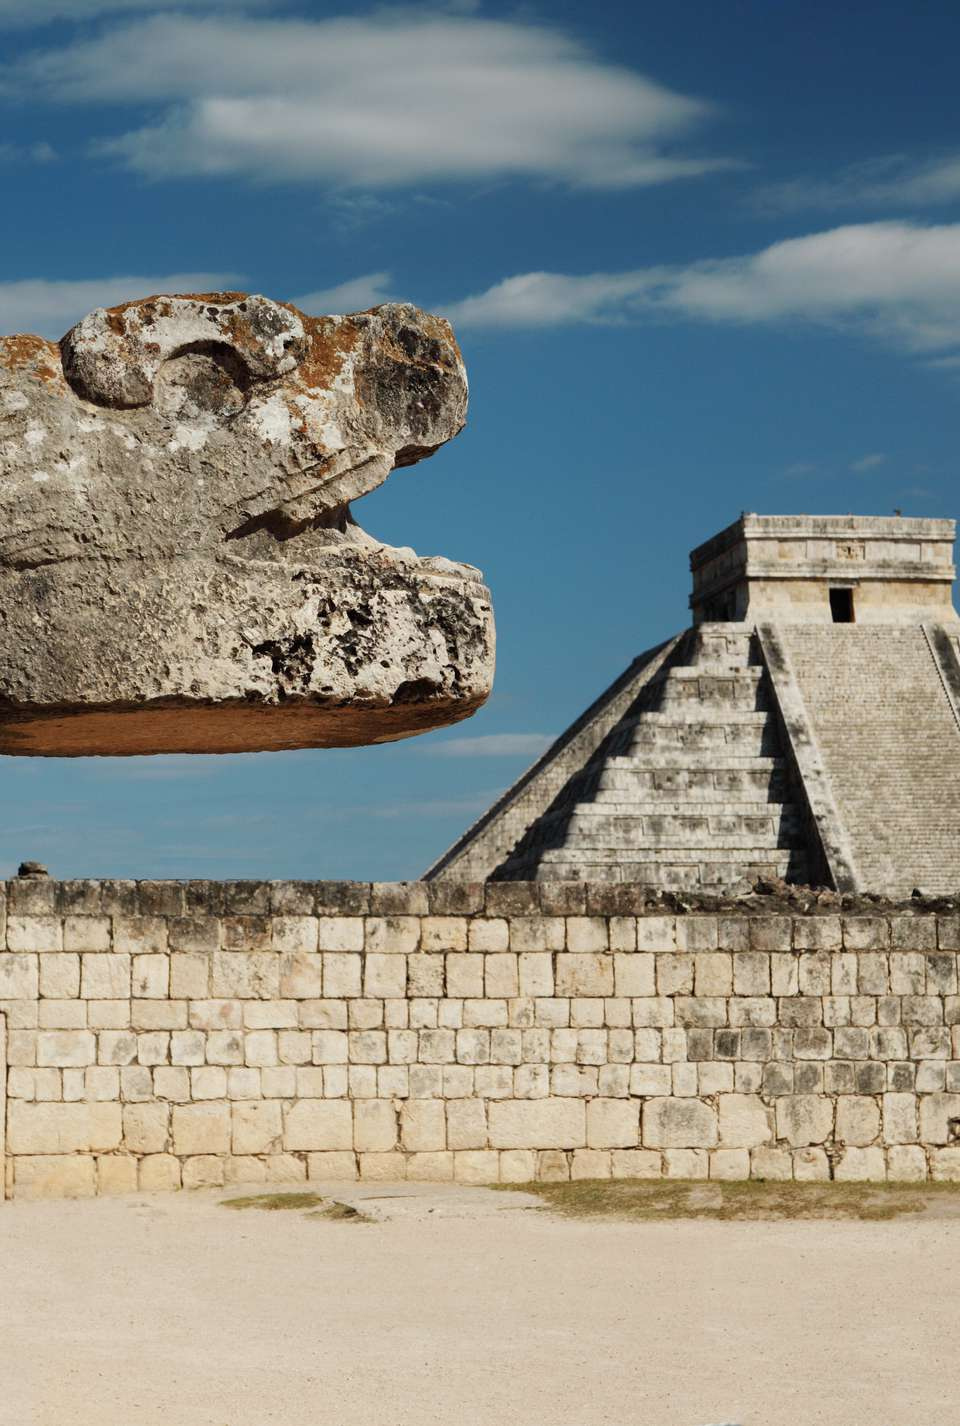 Chichenitza ruins - composition with serpent head and pyramid of Kukulkan during the Spring Equinox